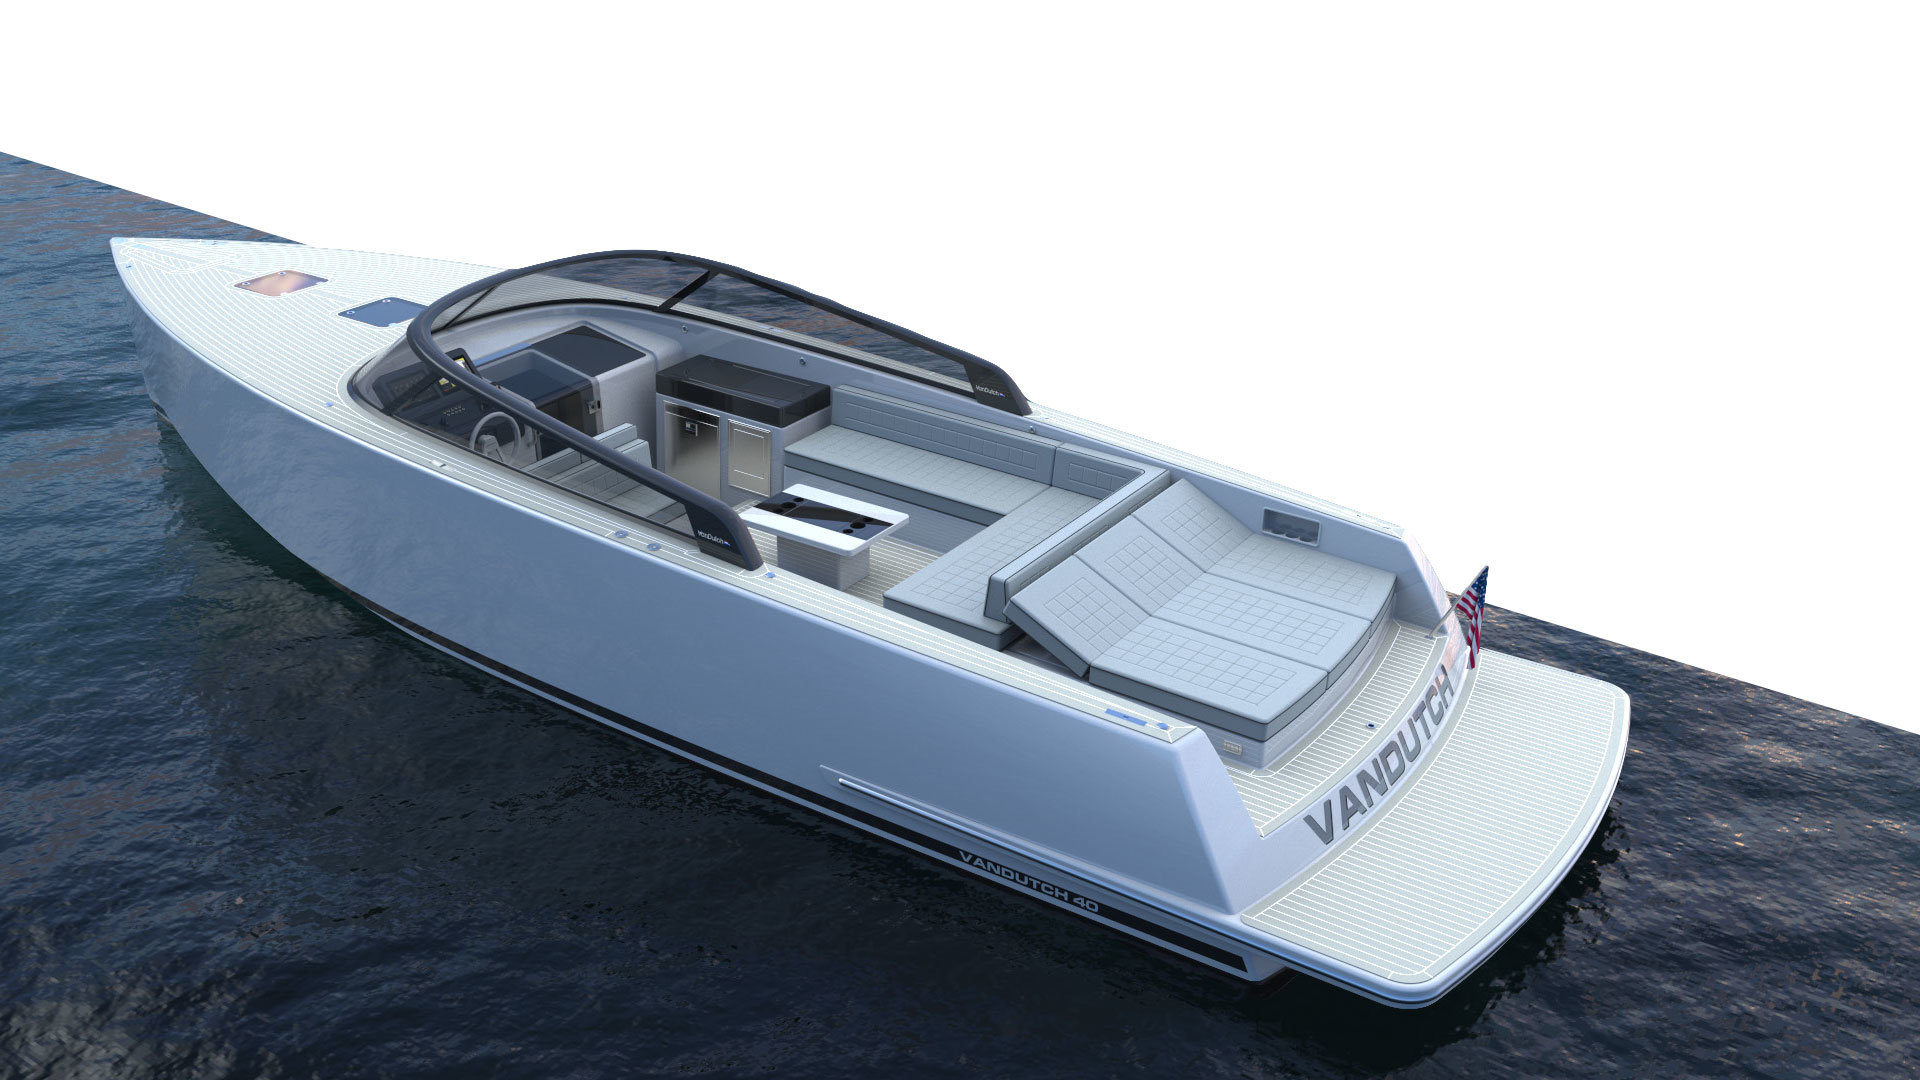 VanDutch 40.2 Exterior Features